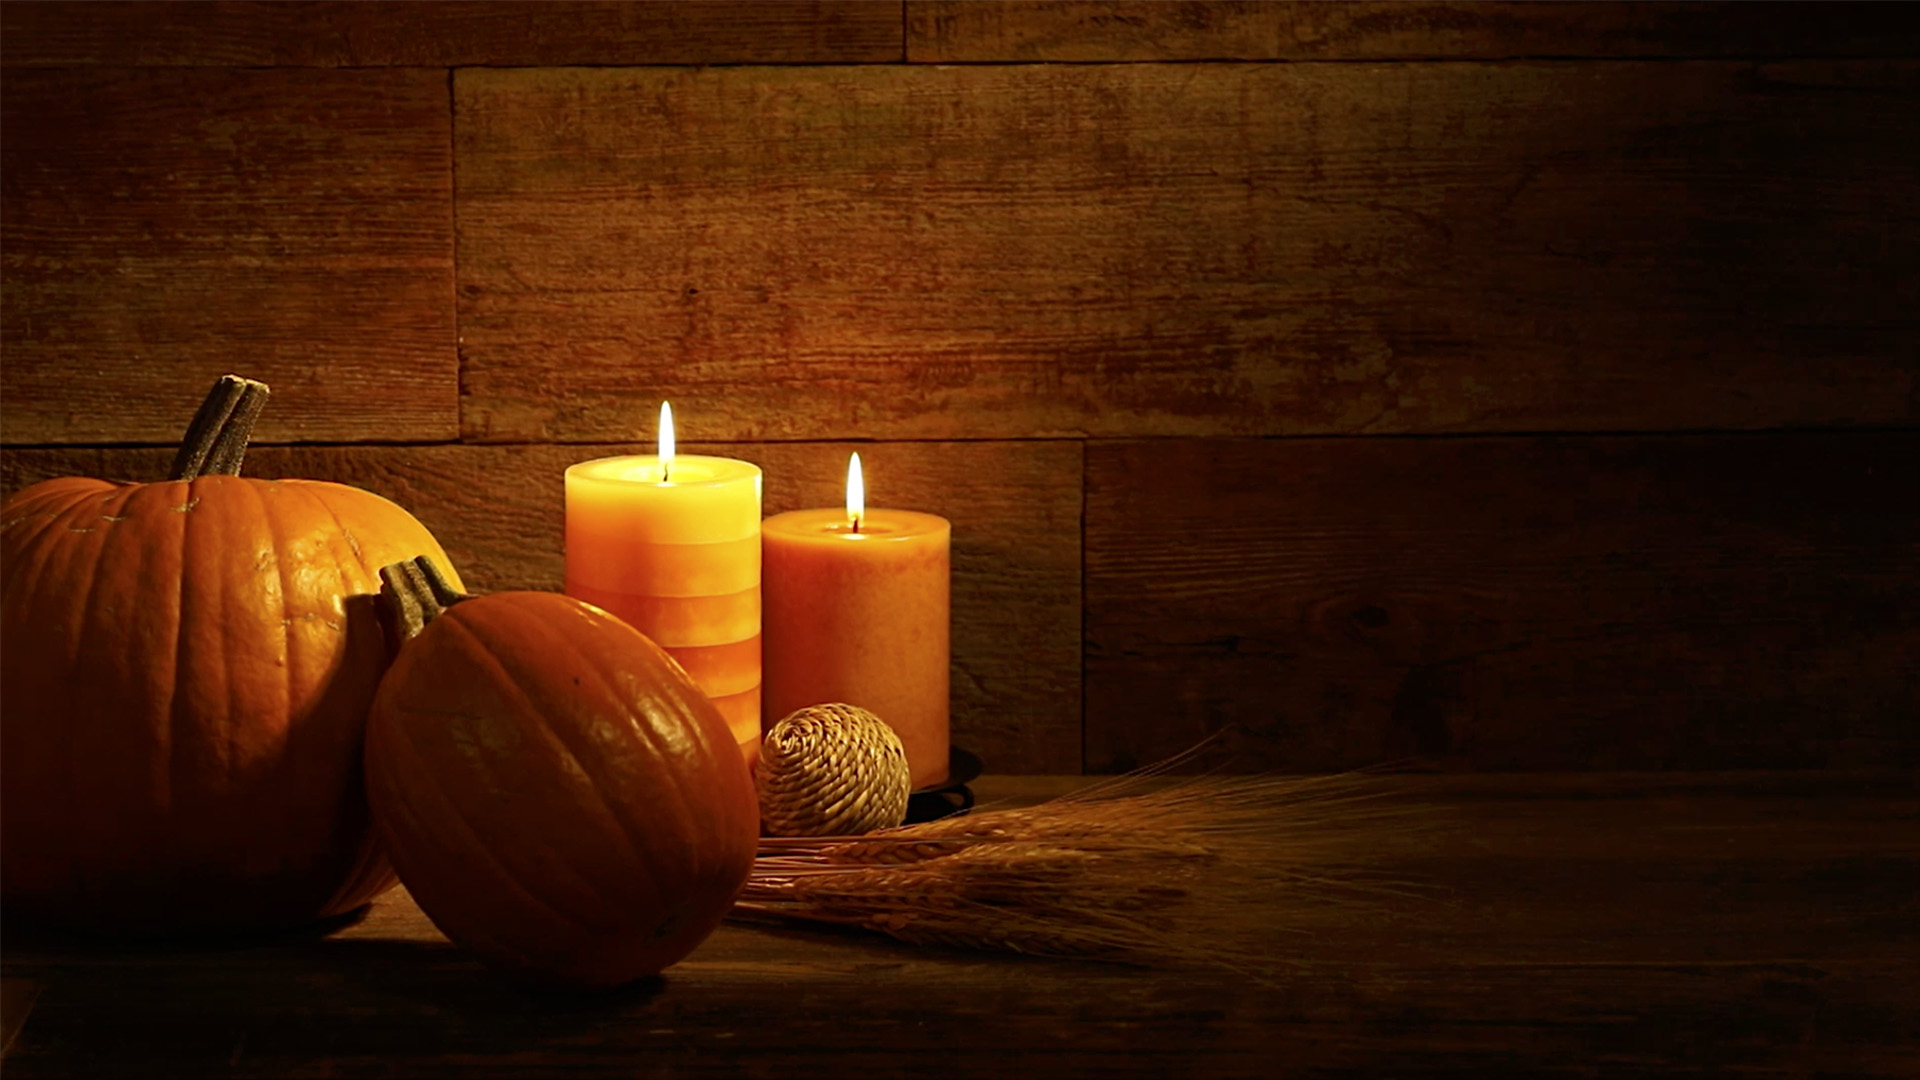 Fall Wallpaper Backgrounds Pumpkins Candles And Pumpkins On Urban Wood Background Video Loop